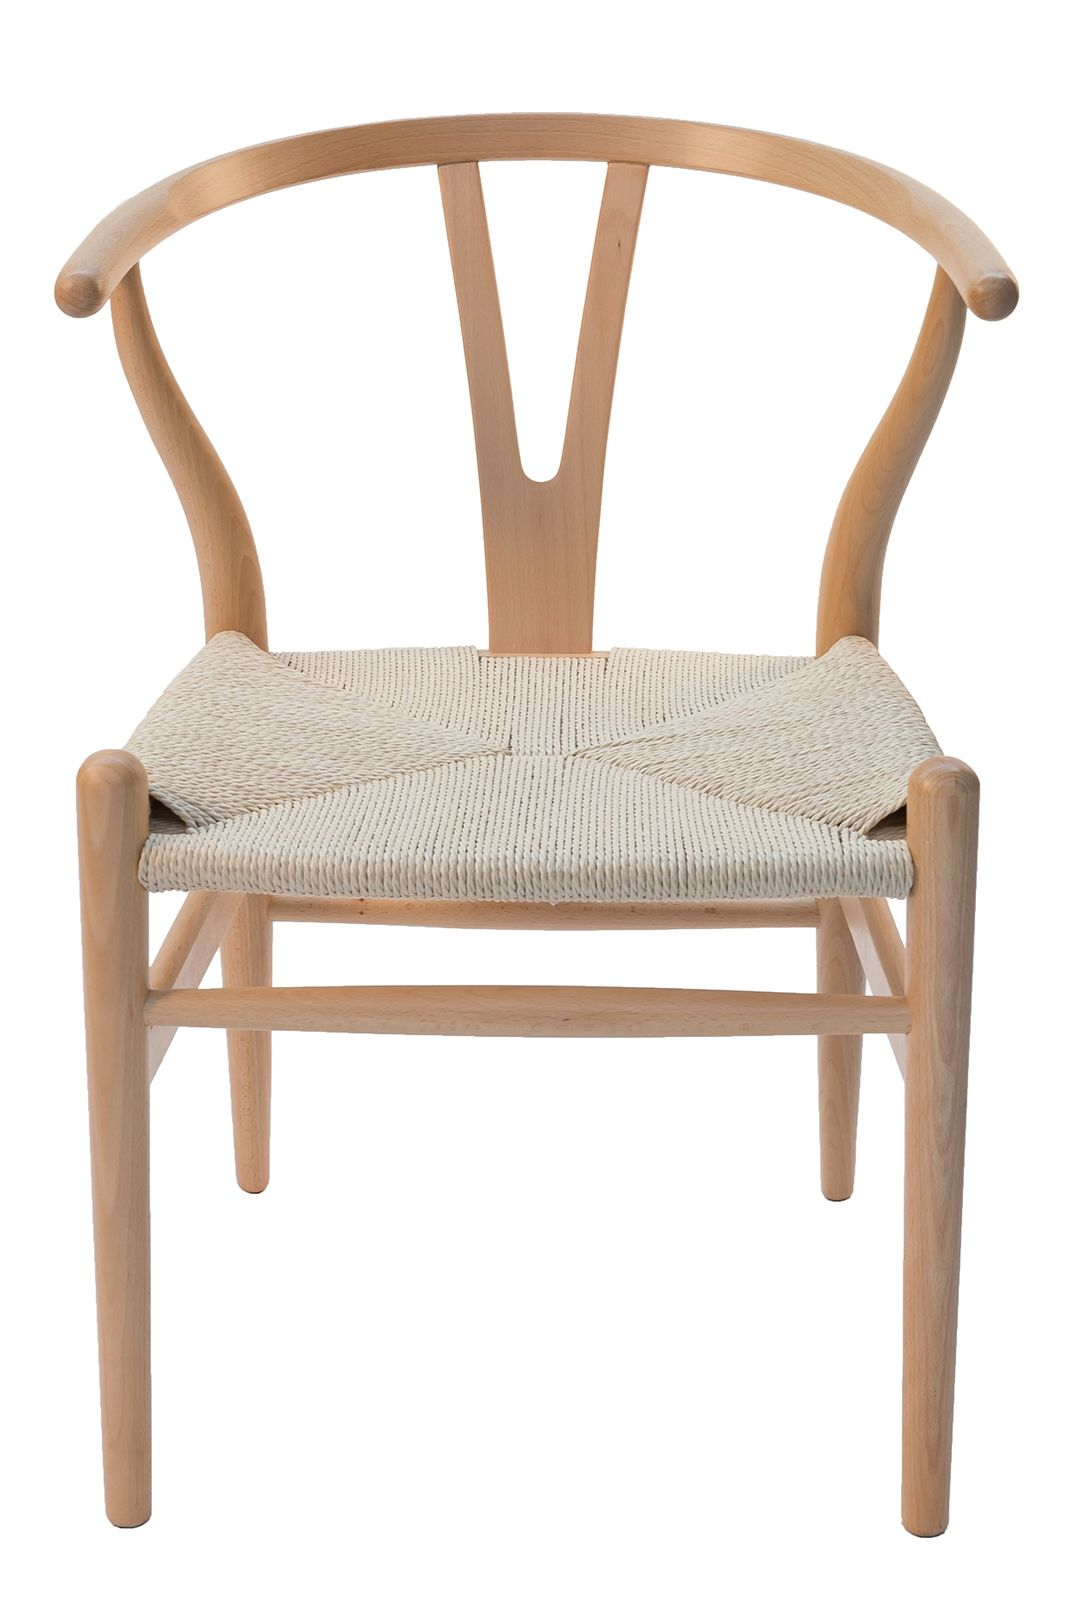 Replica Hans Wegner Wishbone Chair | Natural Frame & Natural Seat